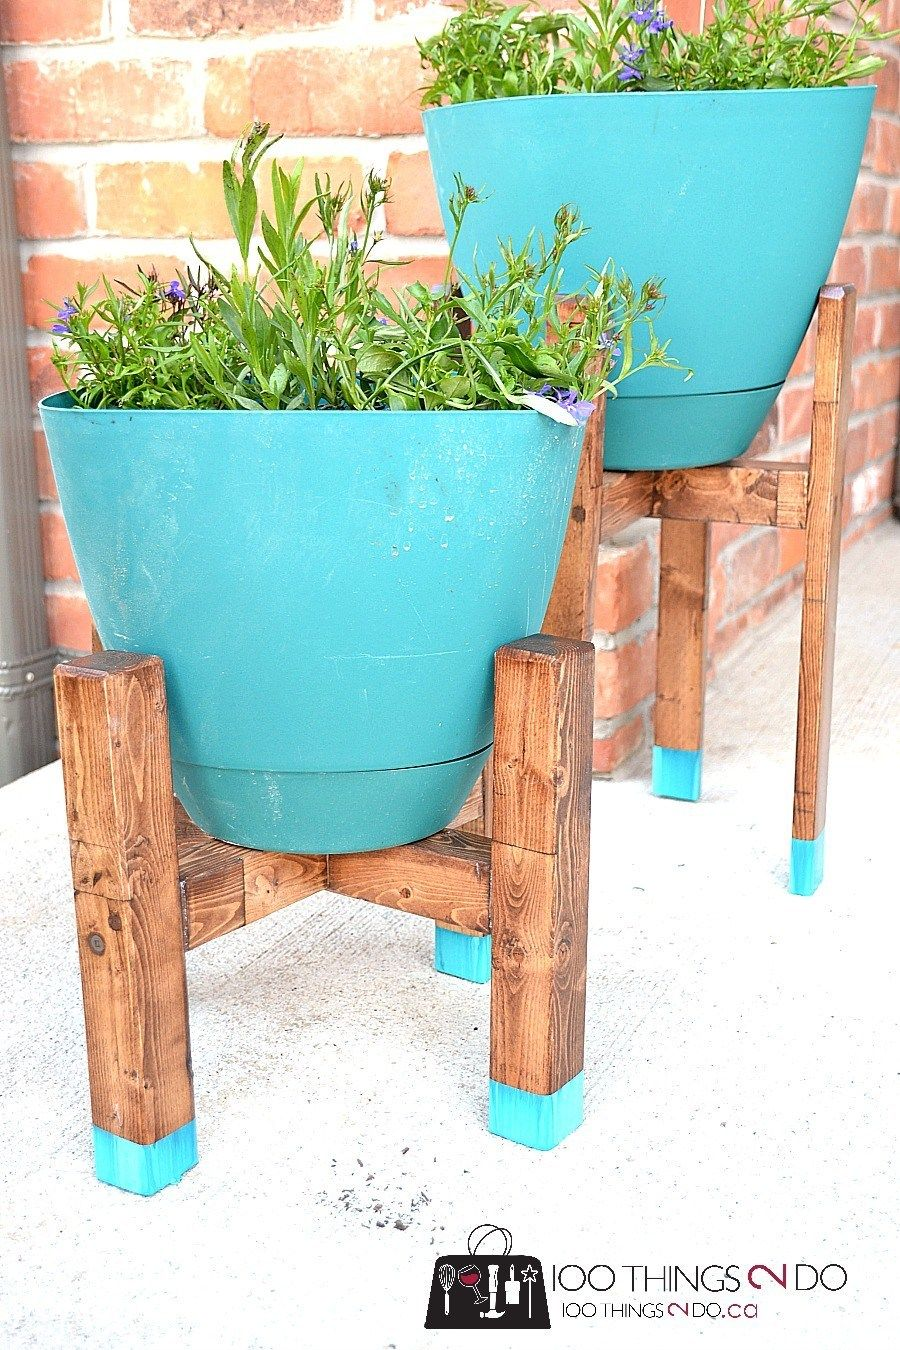 DIY Plant Stand - West Elm Knock-off #diyplantstand